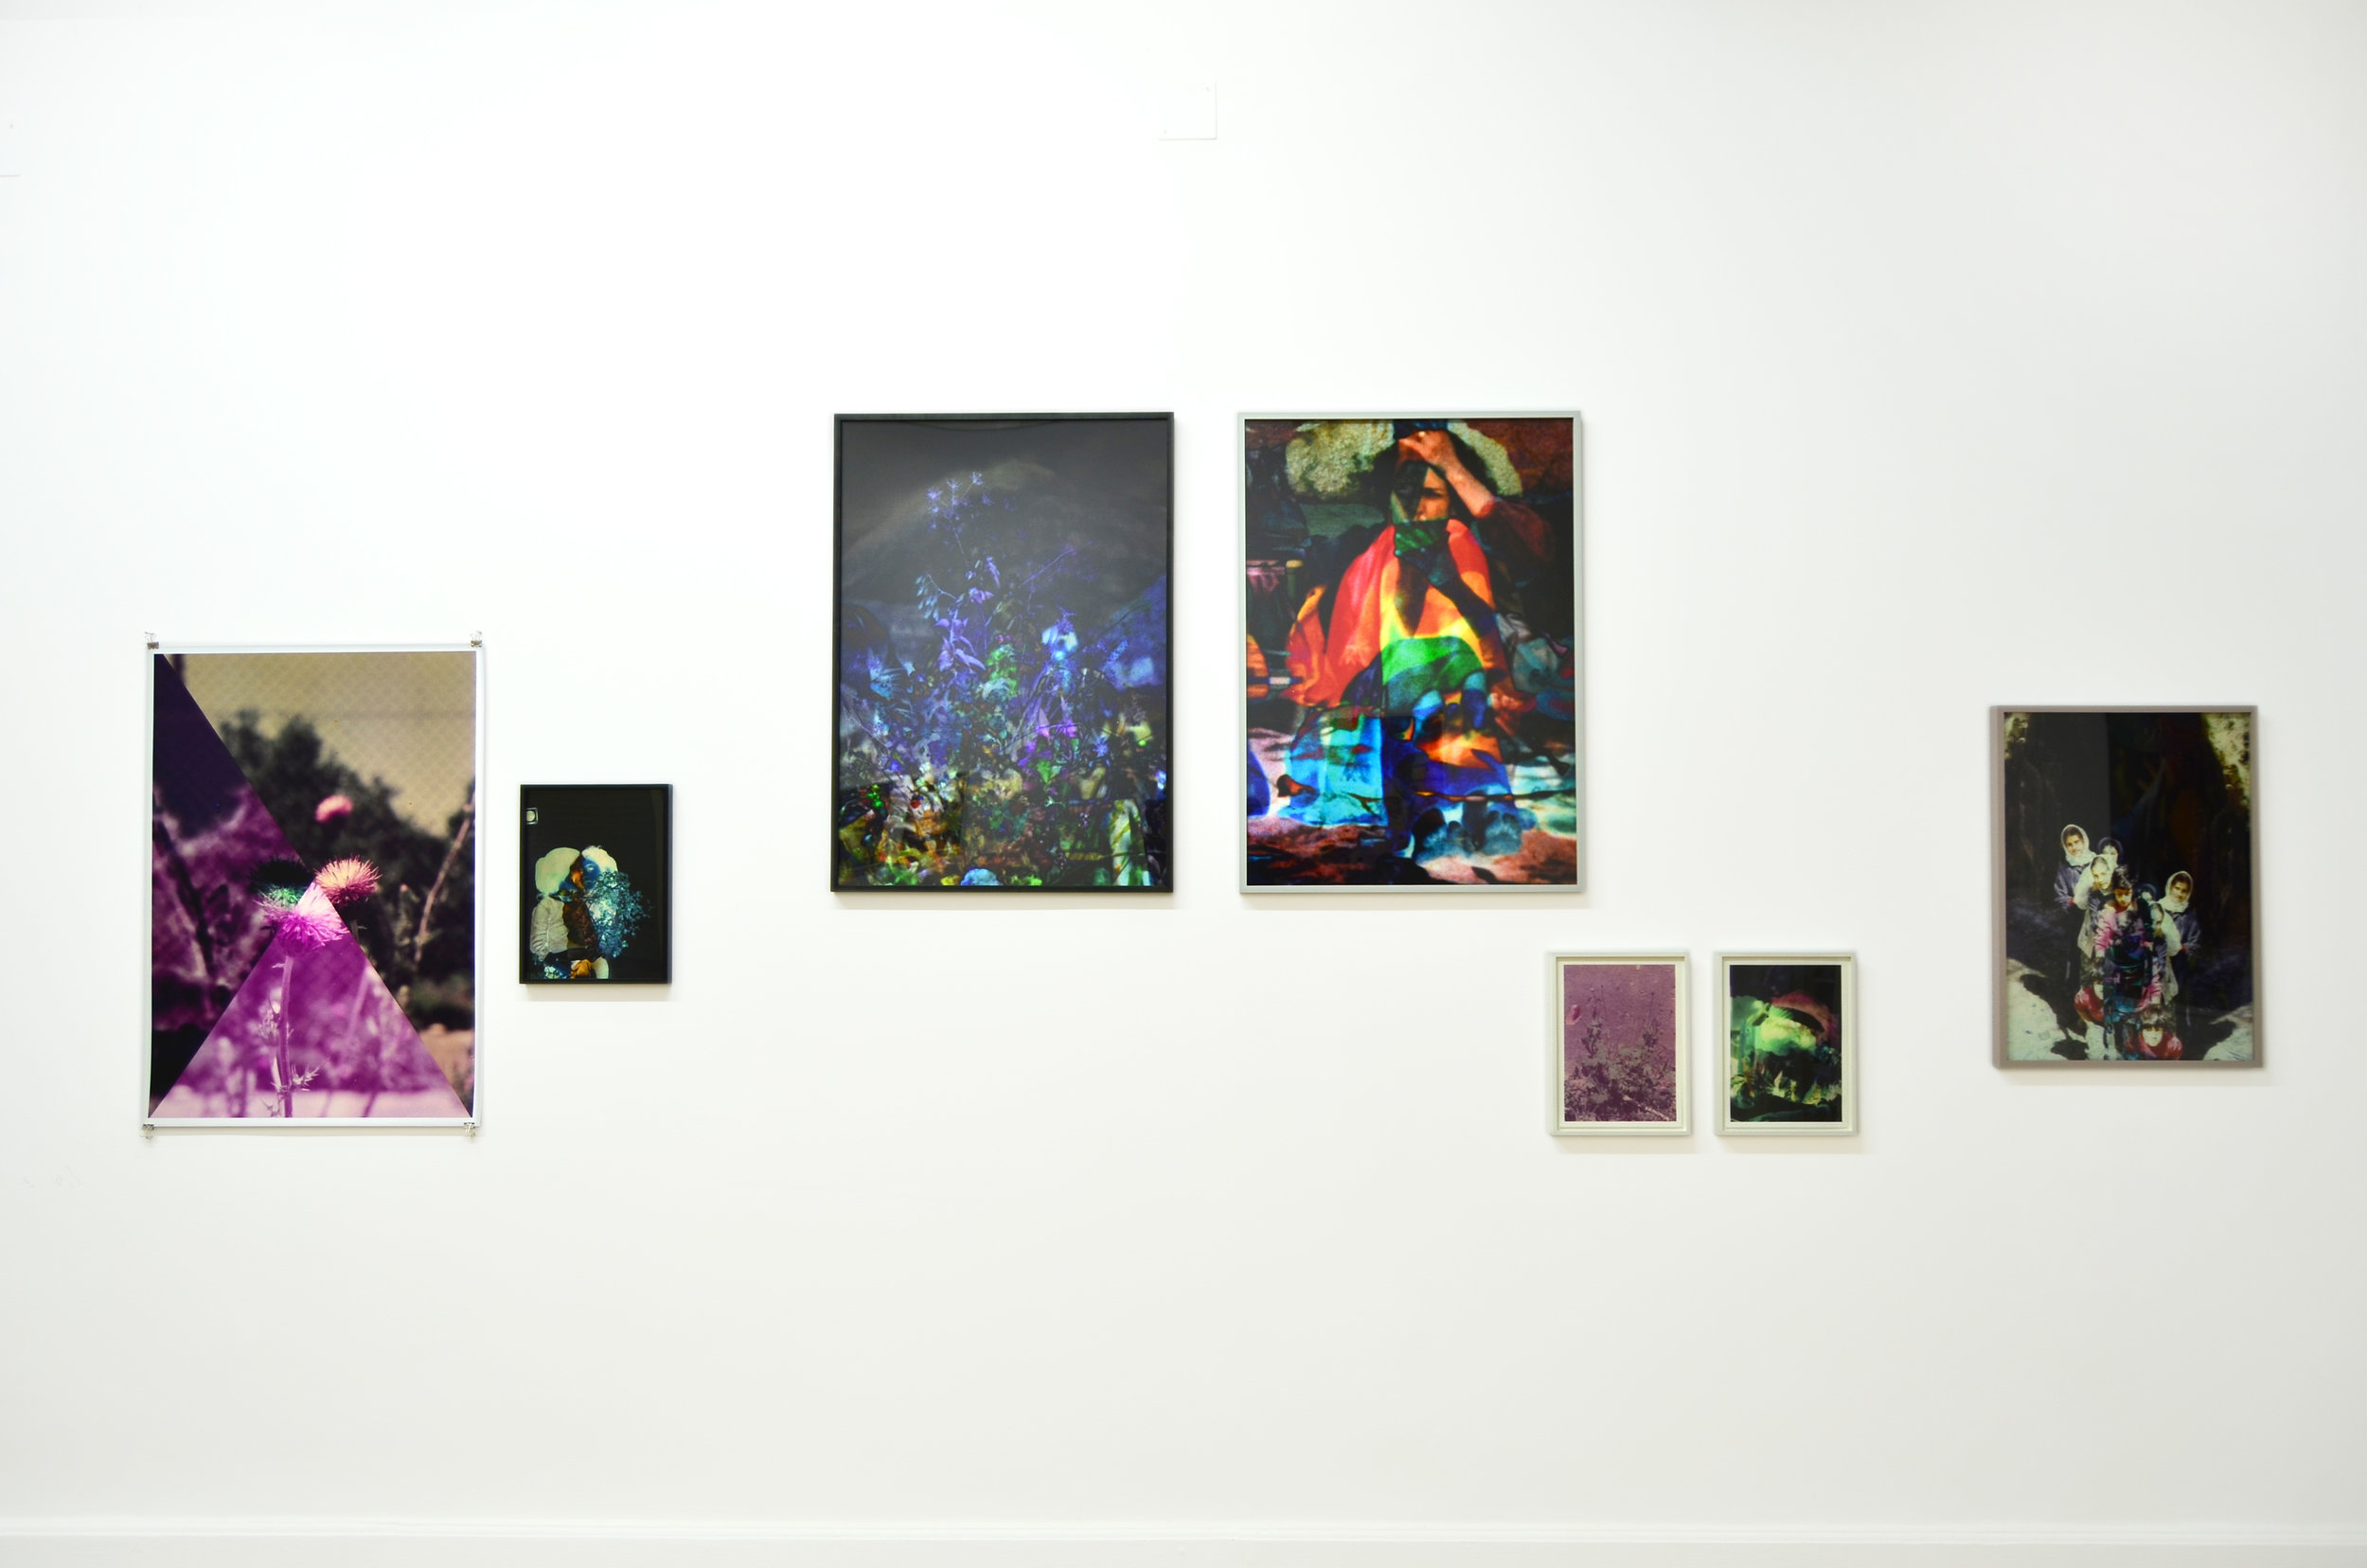 Installation view from the exhibition Spectral Days in Gypsum, 2013